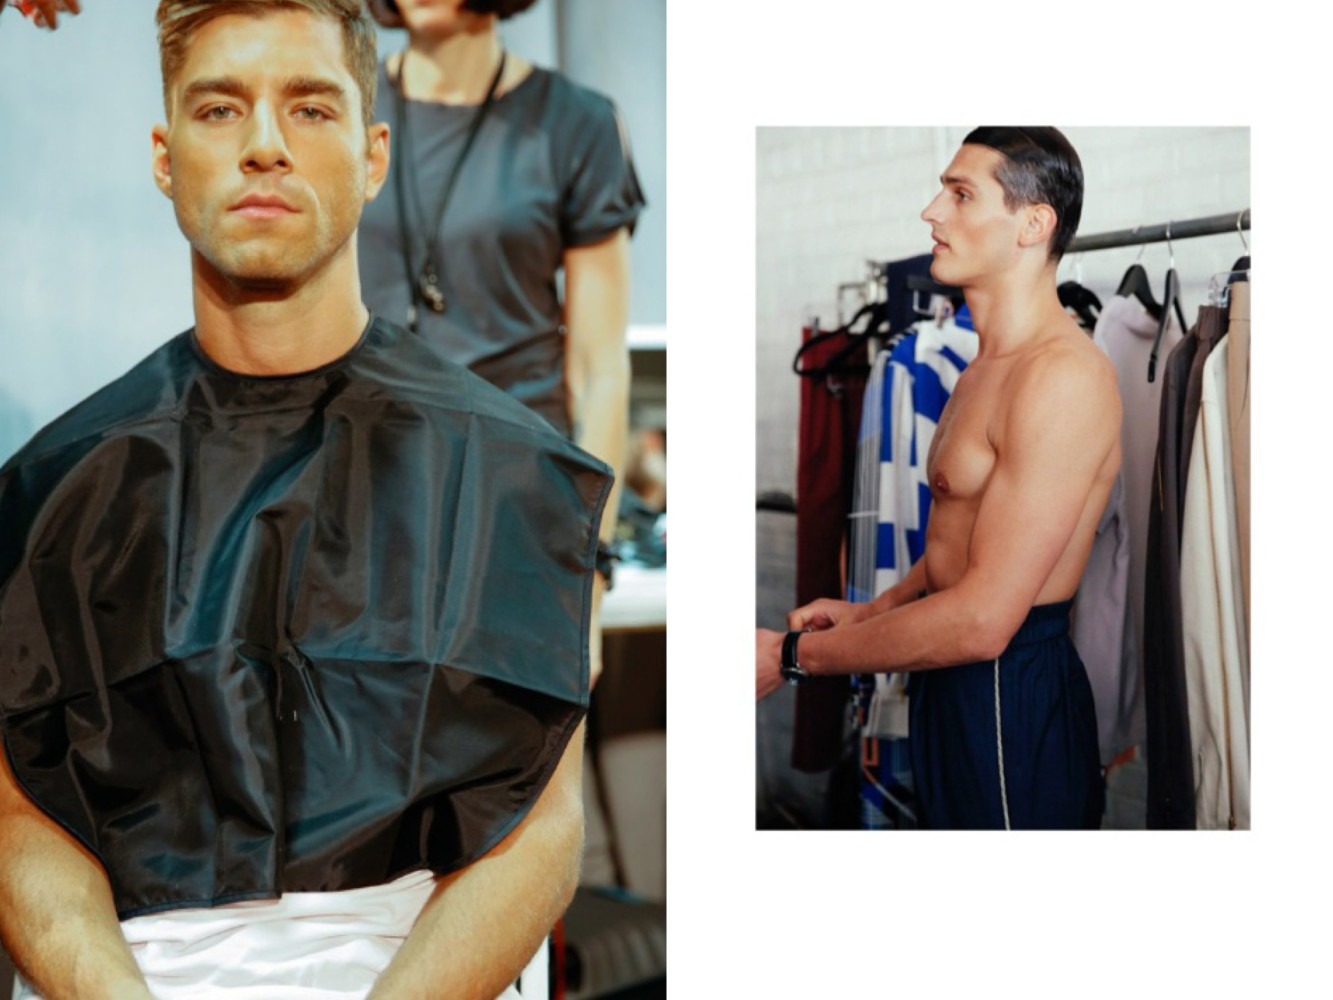 NYFW-behind-the-scenes-male-models-top-5-male-beauty-products-leading-London-modelling-agency-IMM